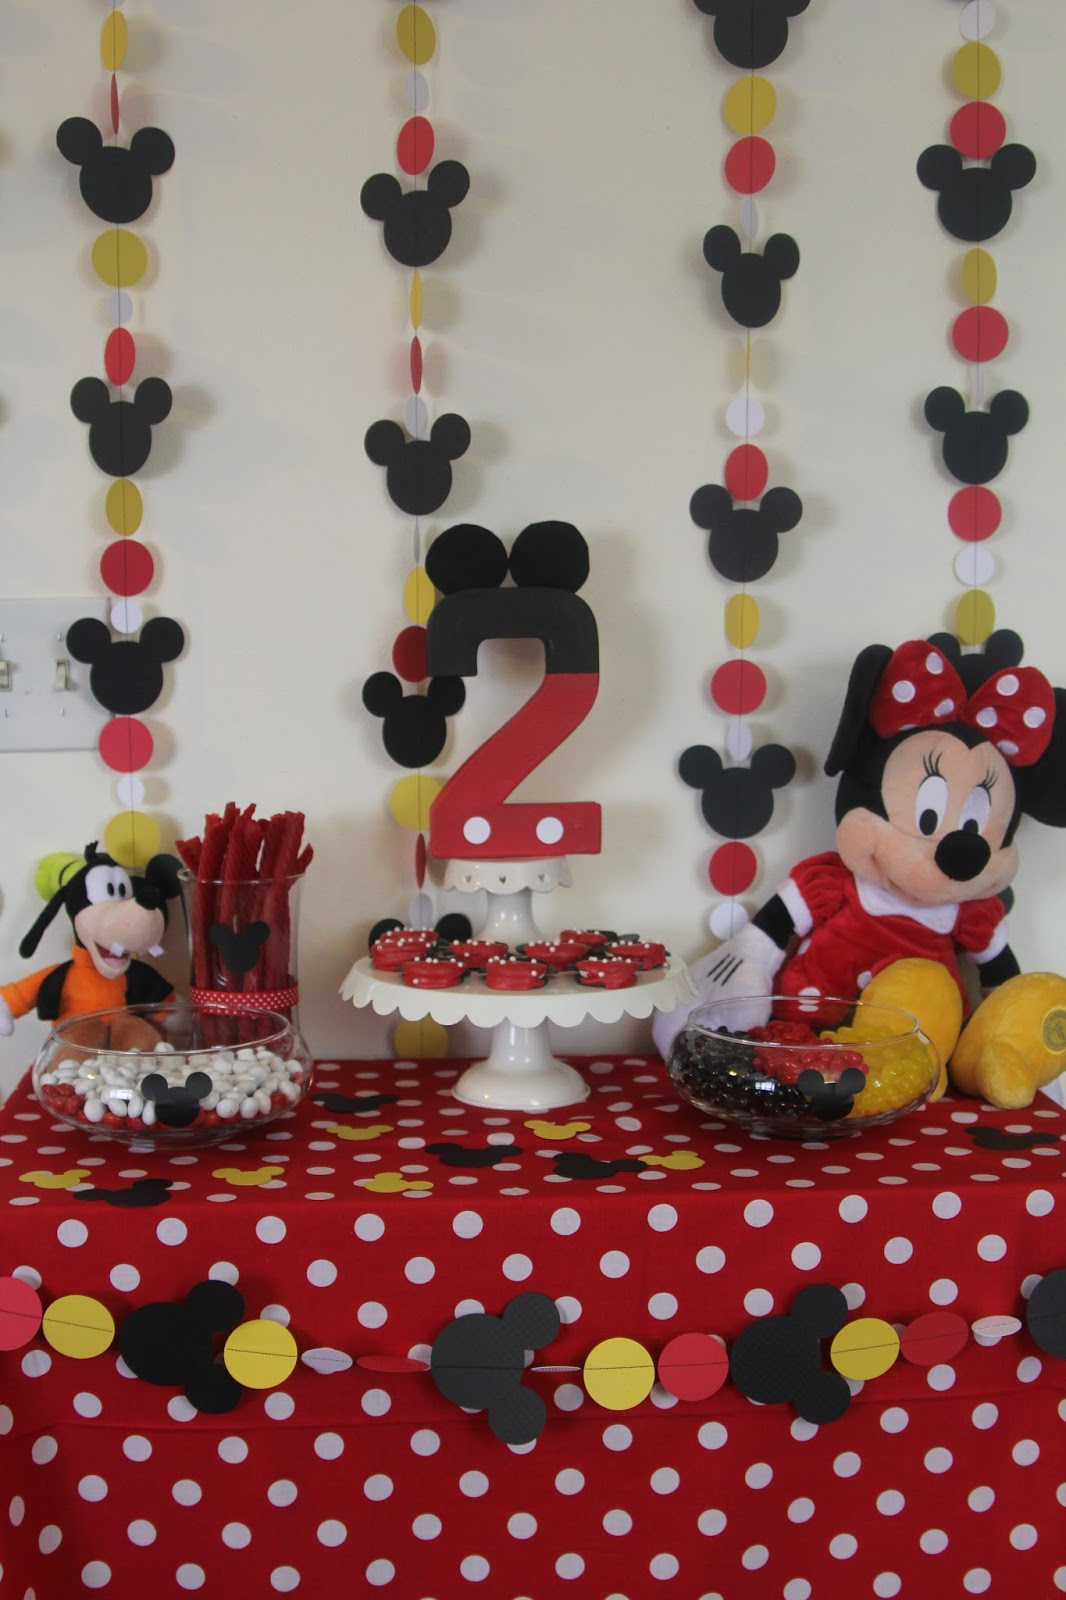 Decorating the dorchester way simple red minnie mouse birthday party simple red minnie mouse birthday party amipublicfo Choice Image